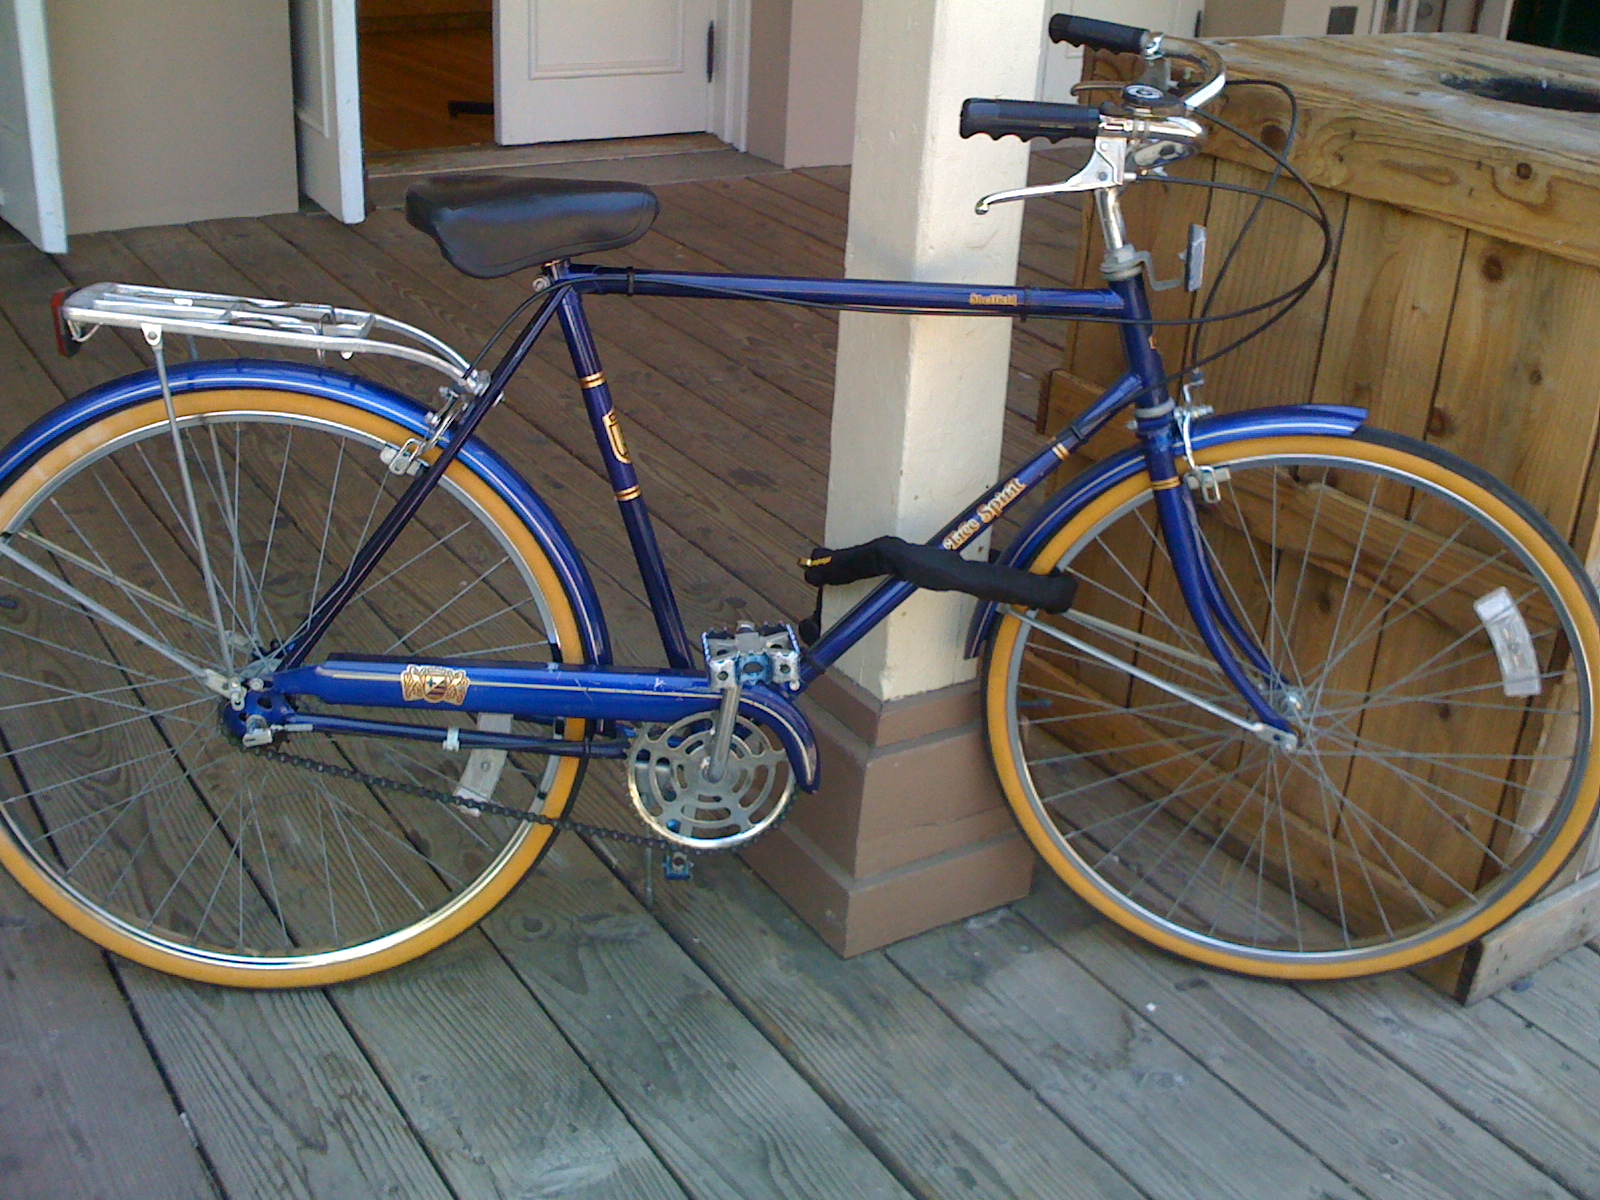 mikespokes: A well-protected Free Spirit